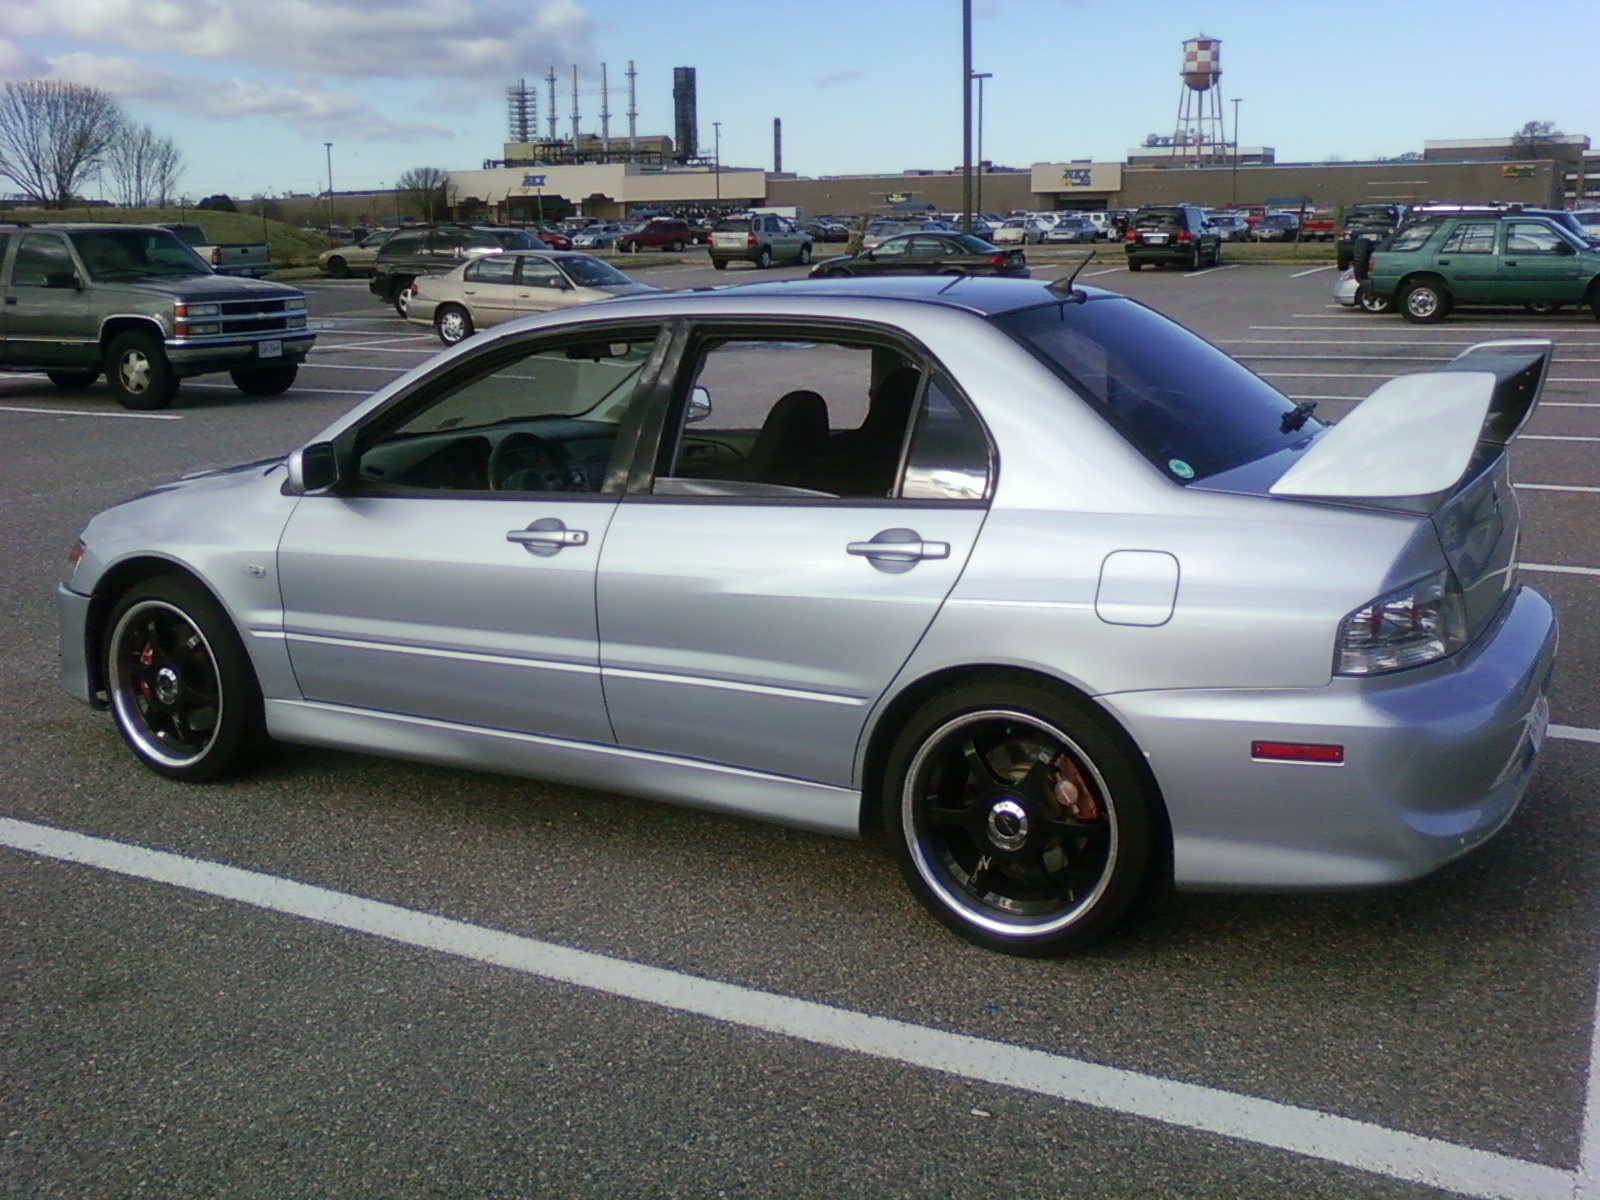 Mitsubishi Lancer 2003 Review Amazing Pictures And Images Look At The Car